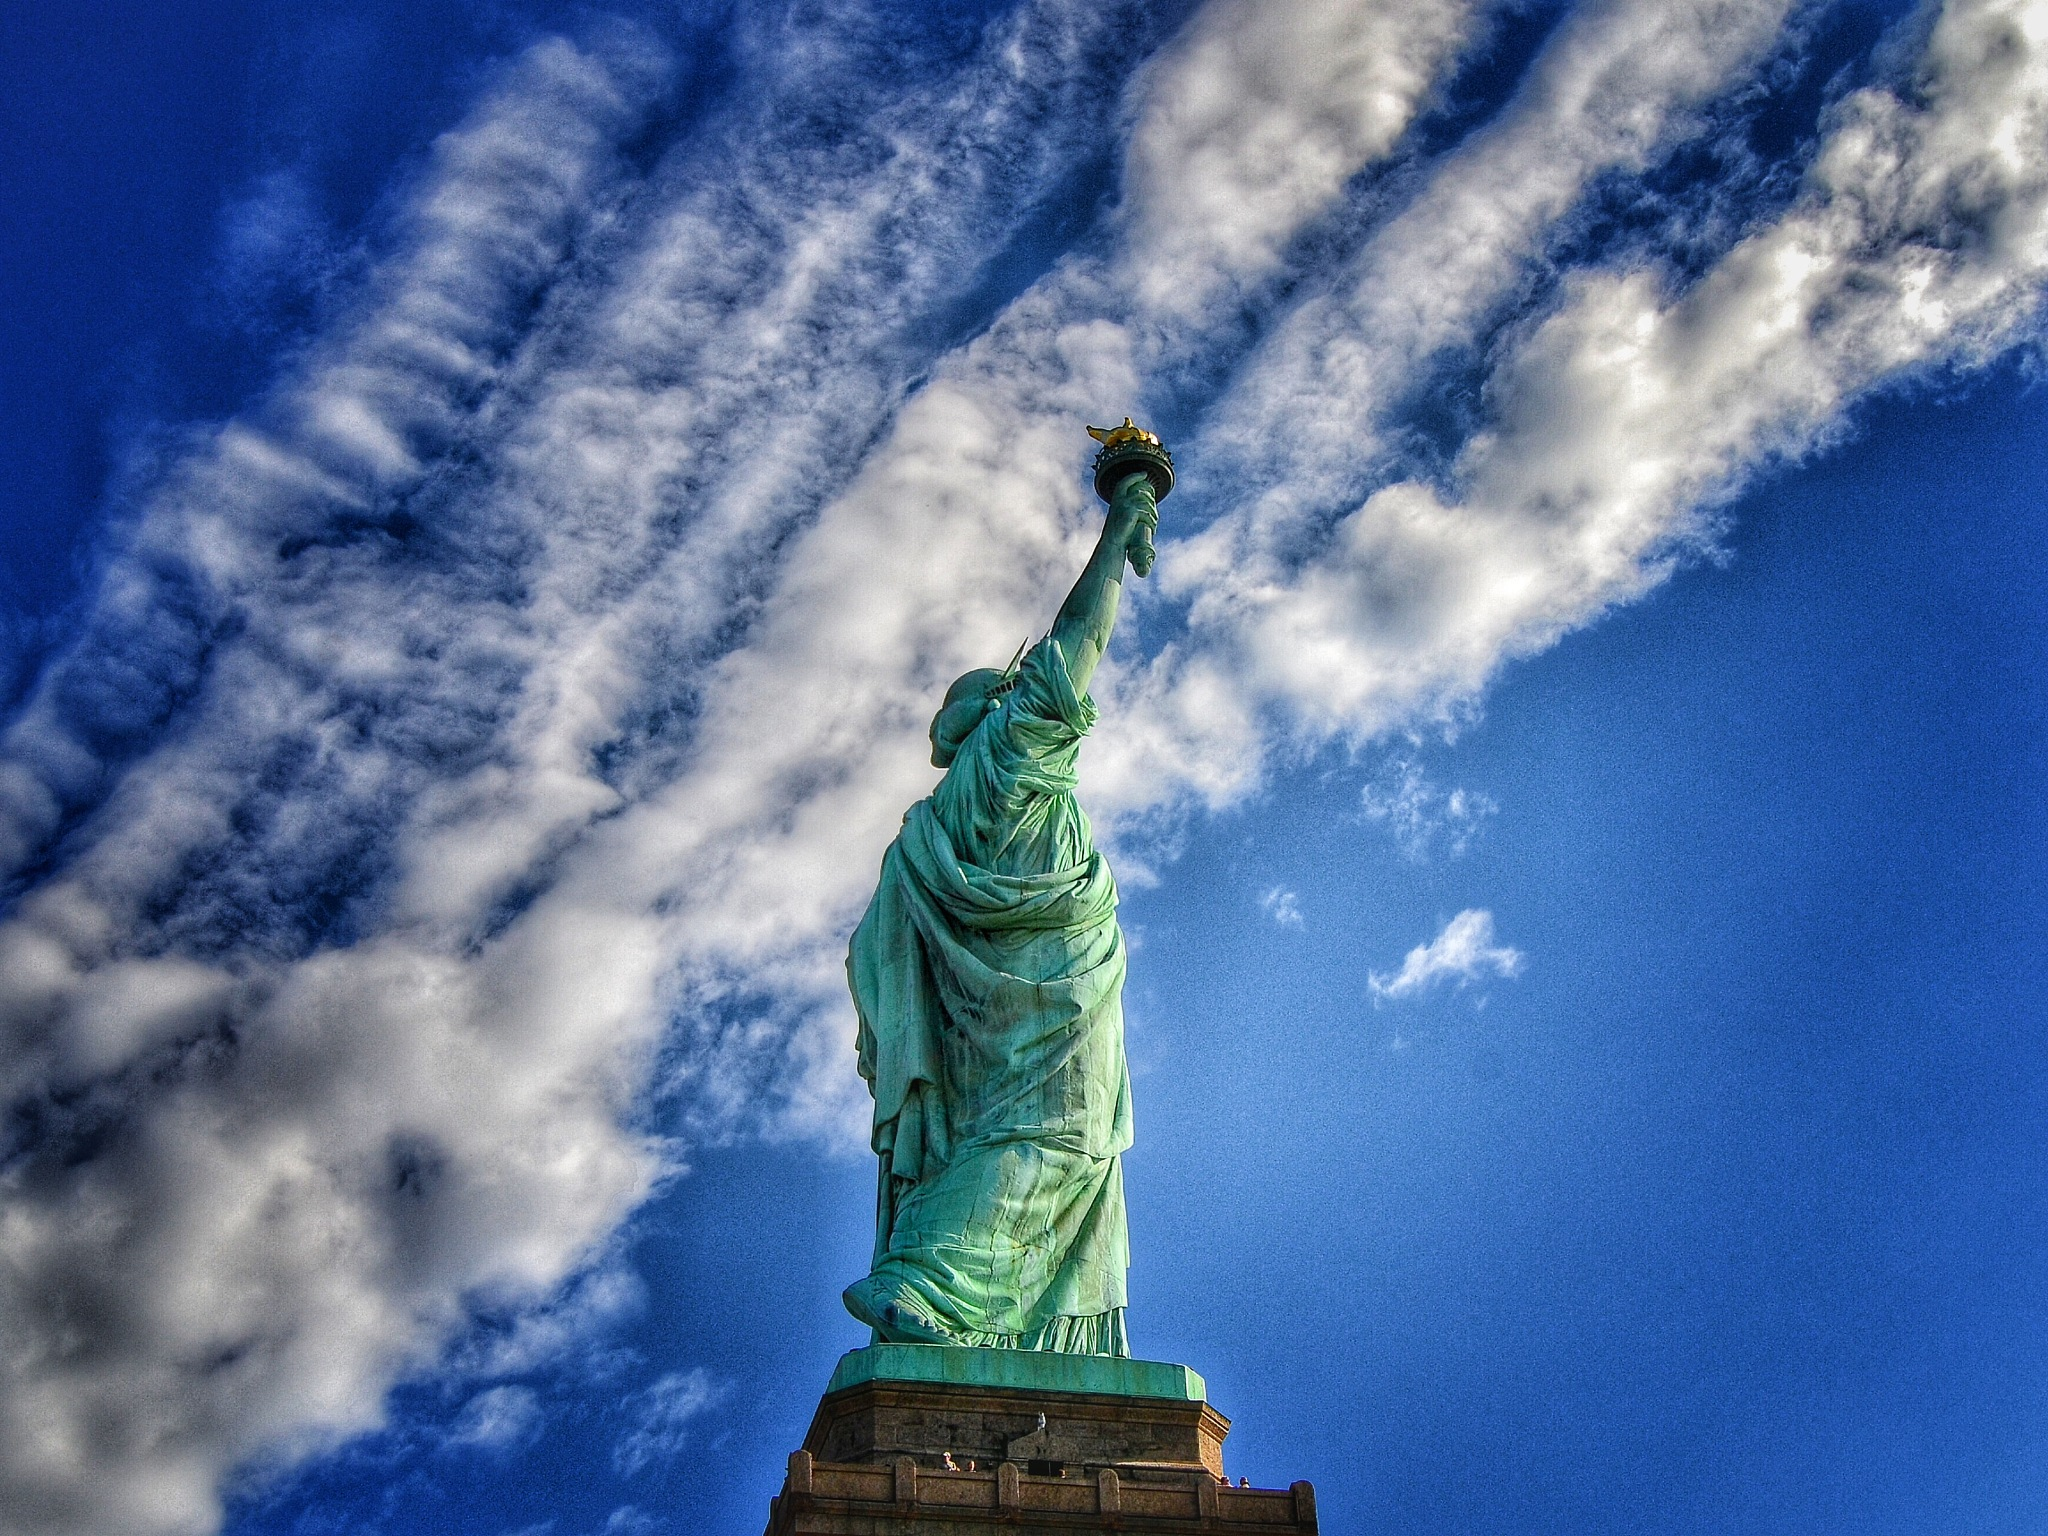 The Statue of Liberty by Christian Jerhov